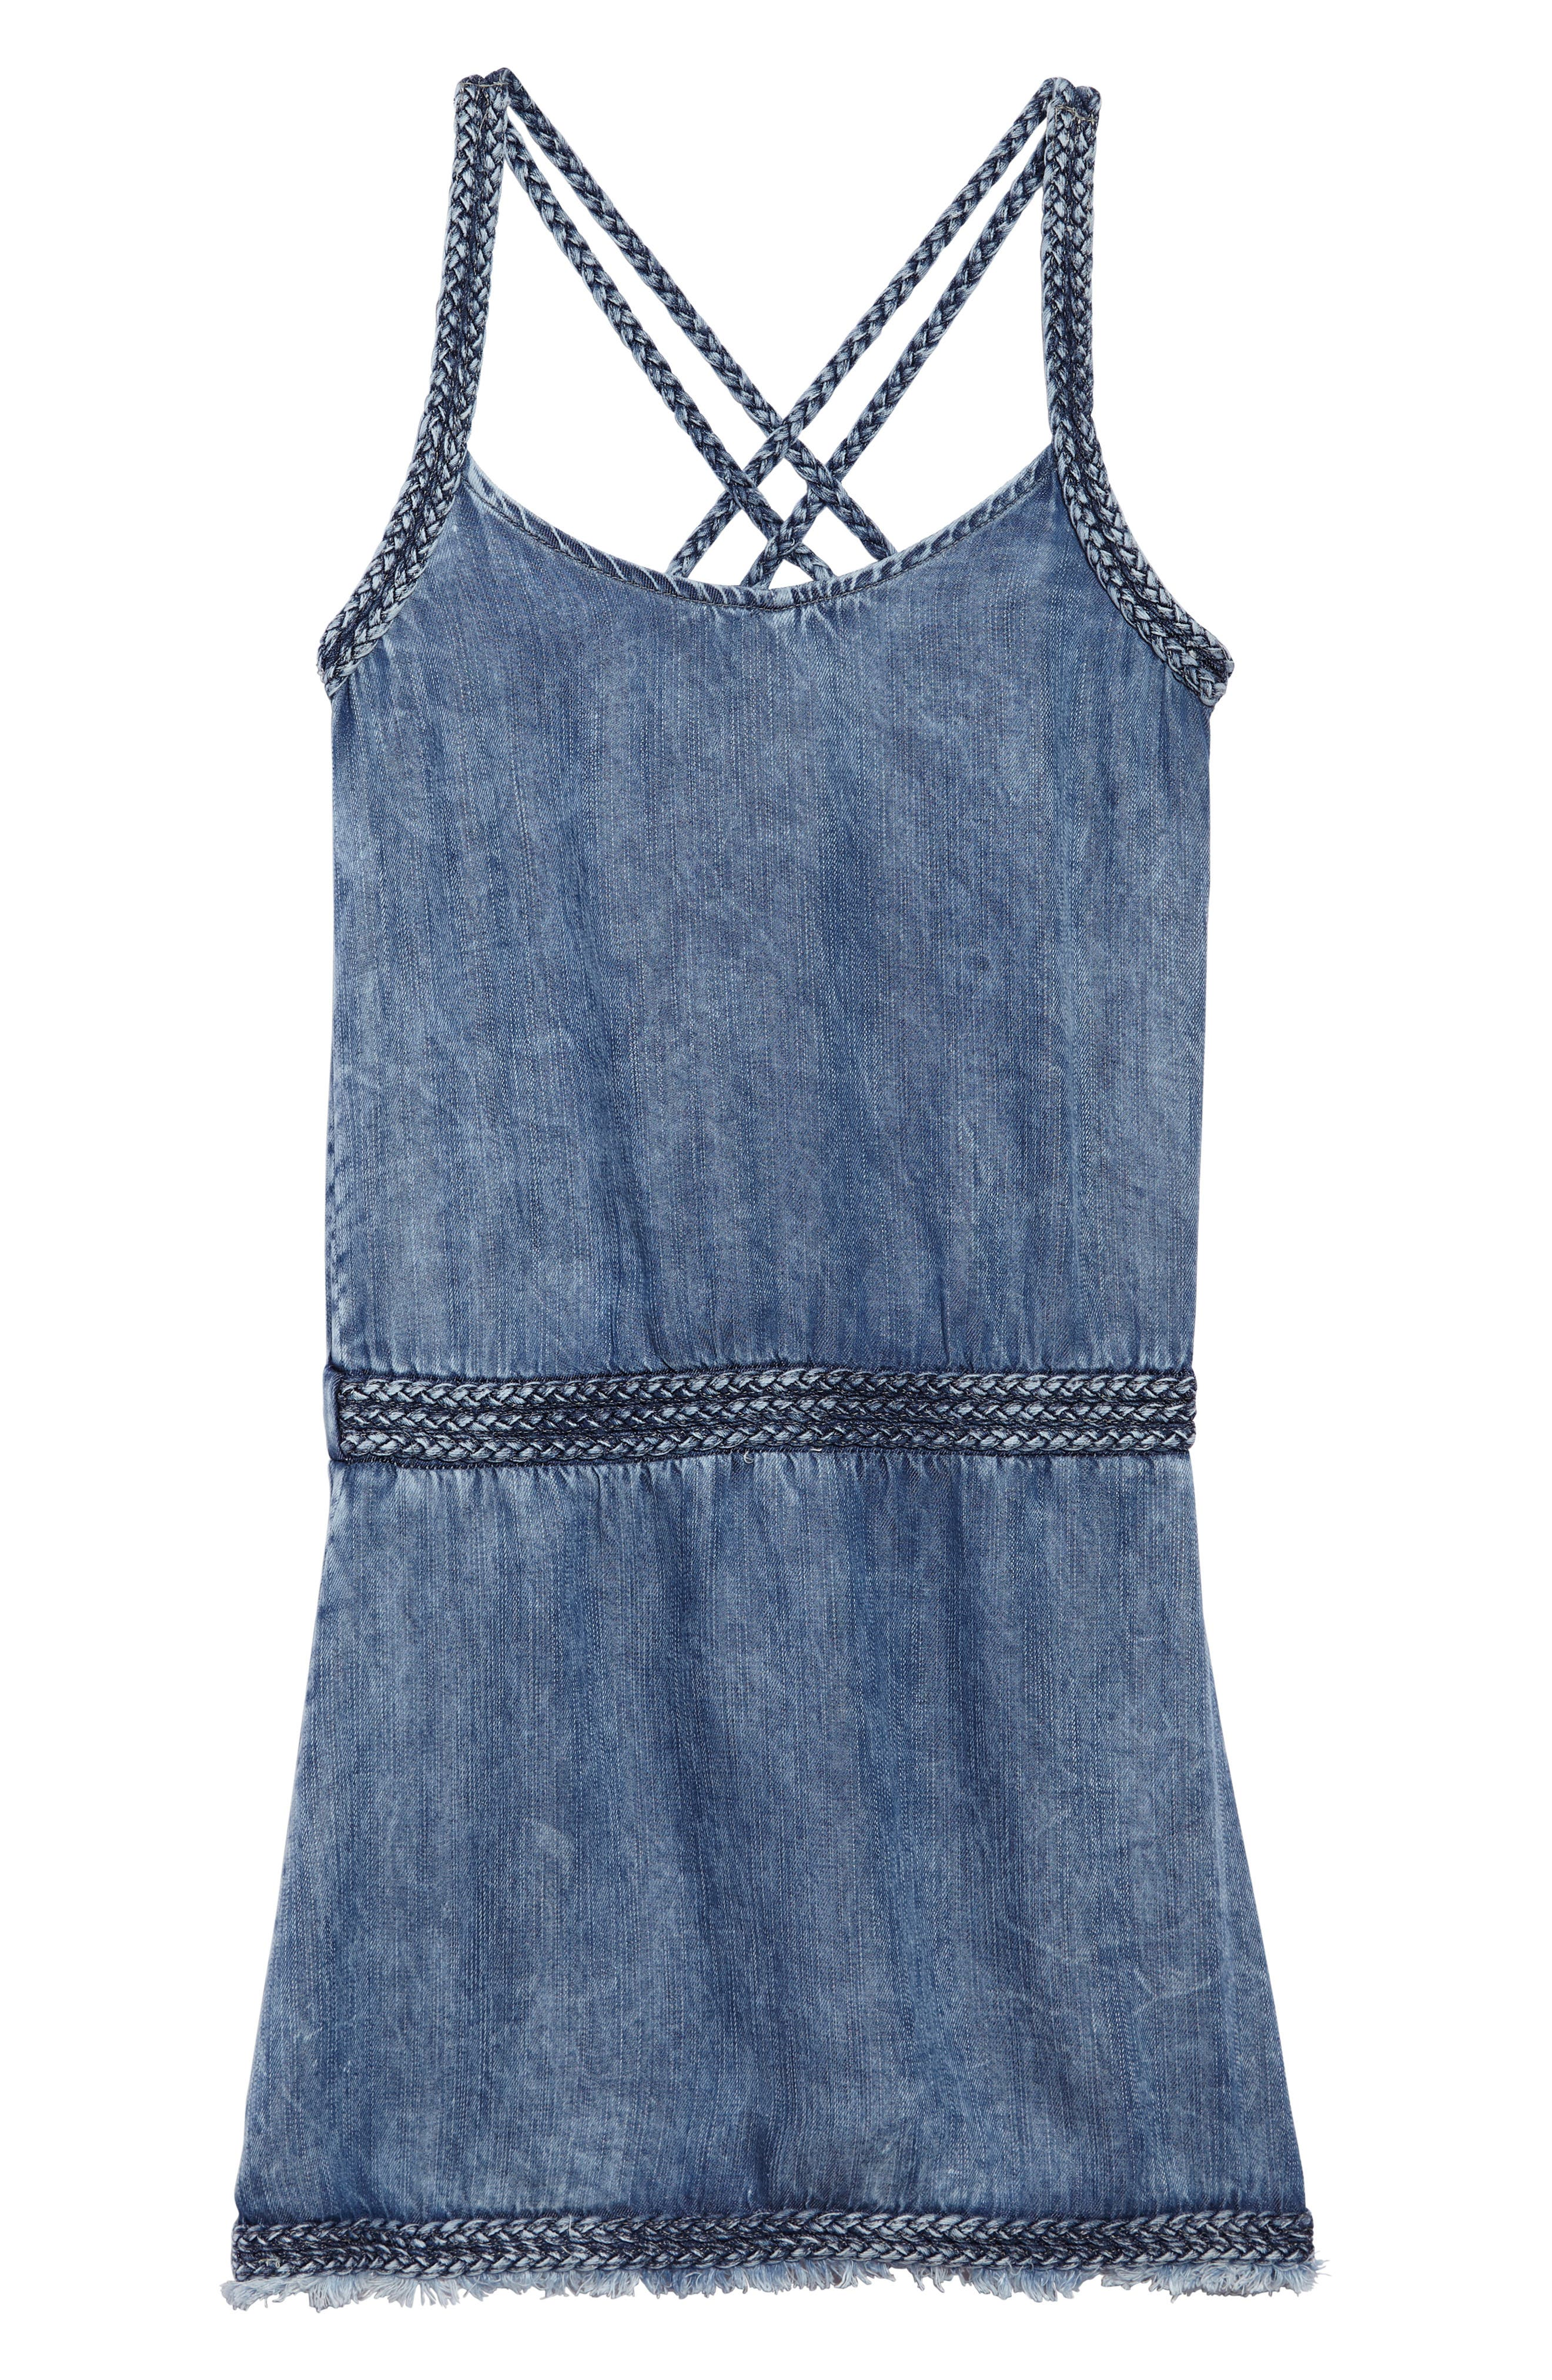 Braided Chambray Dress,                         Main,                         color, 407